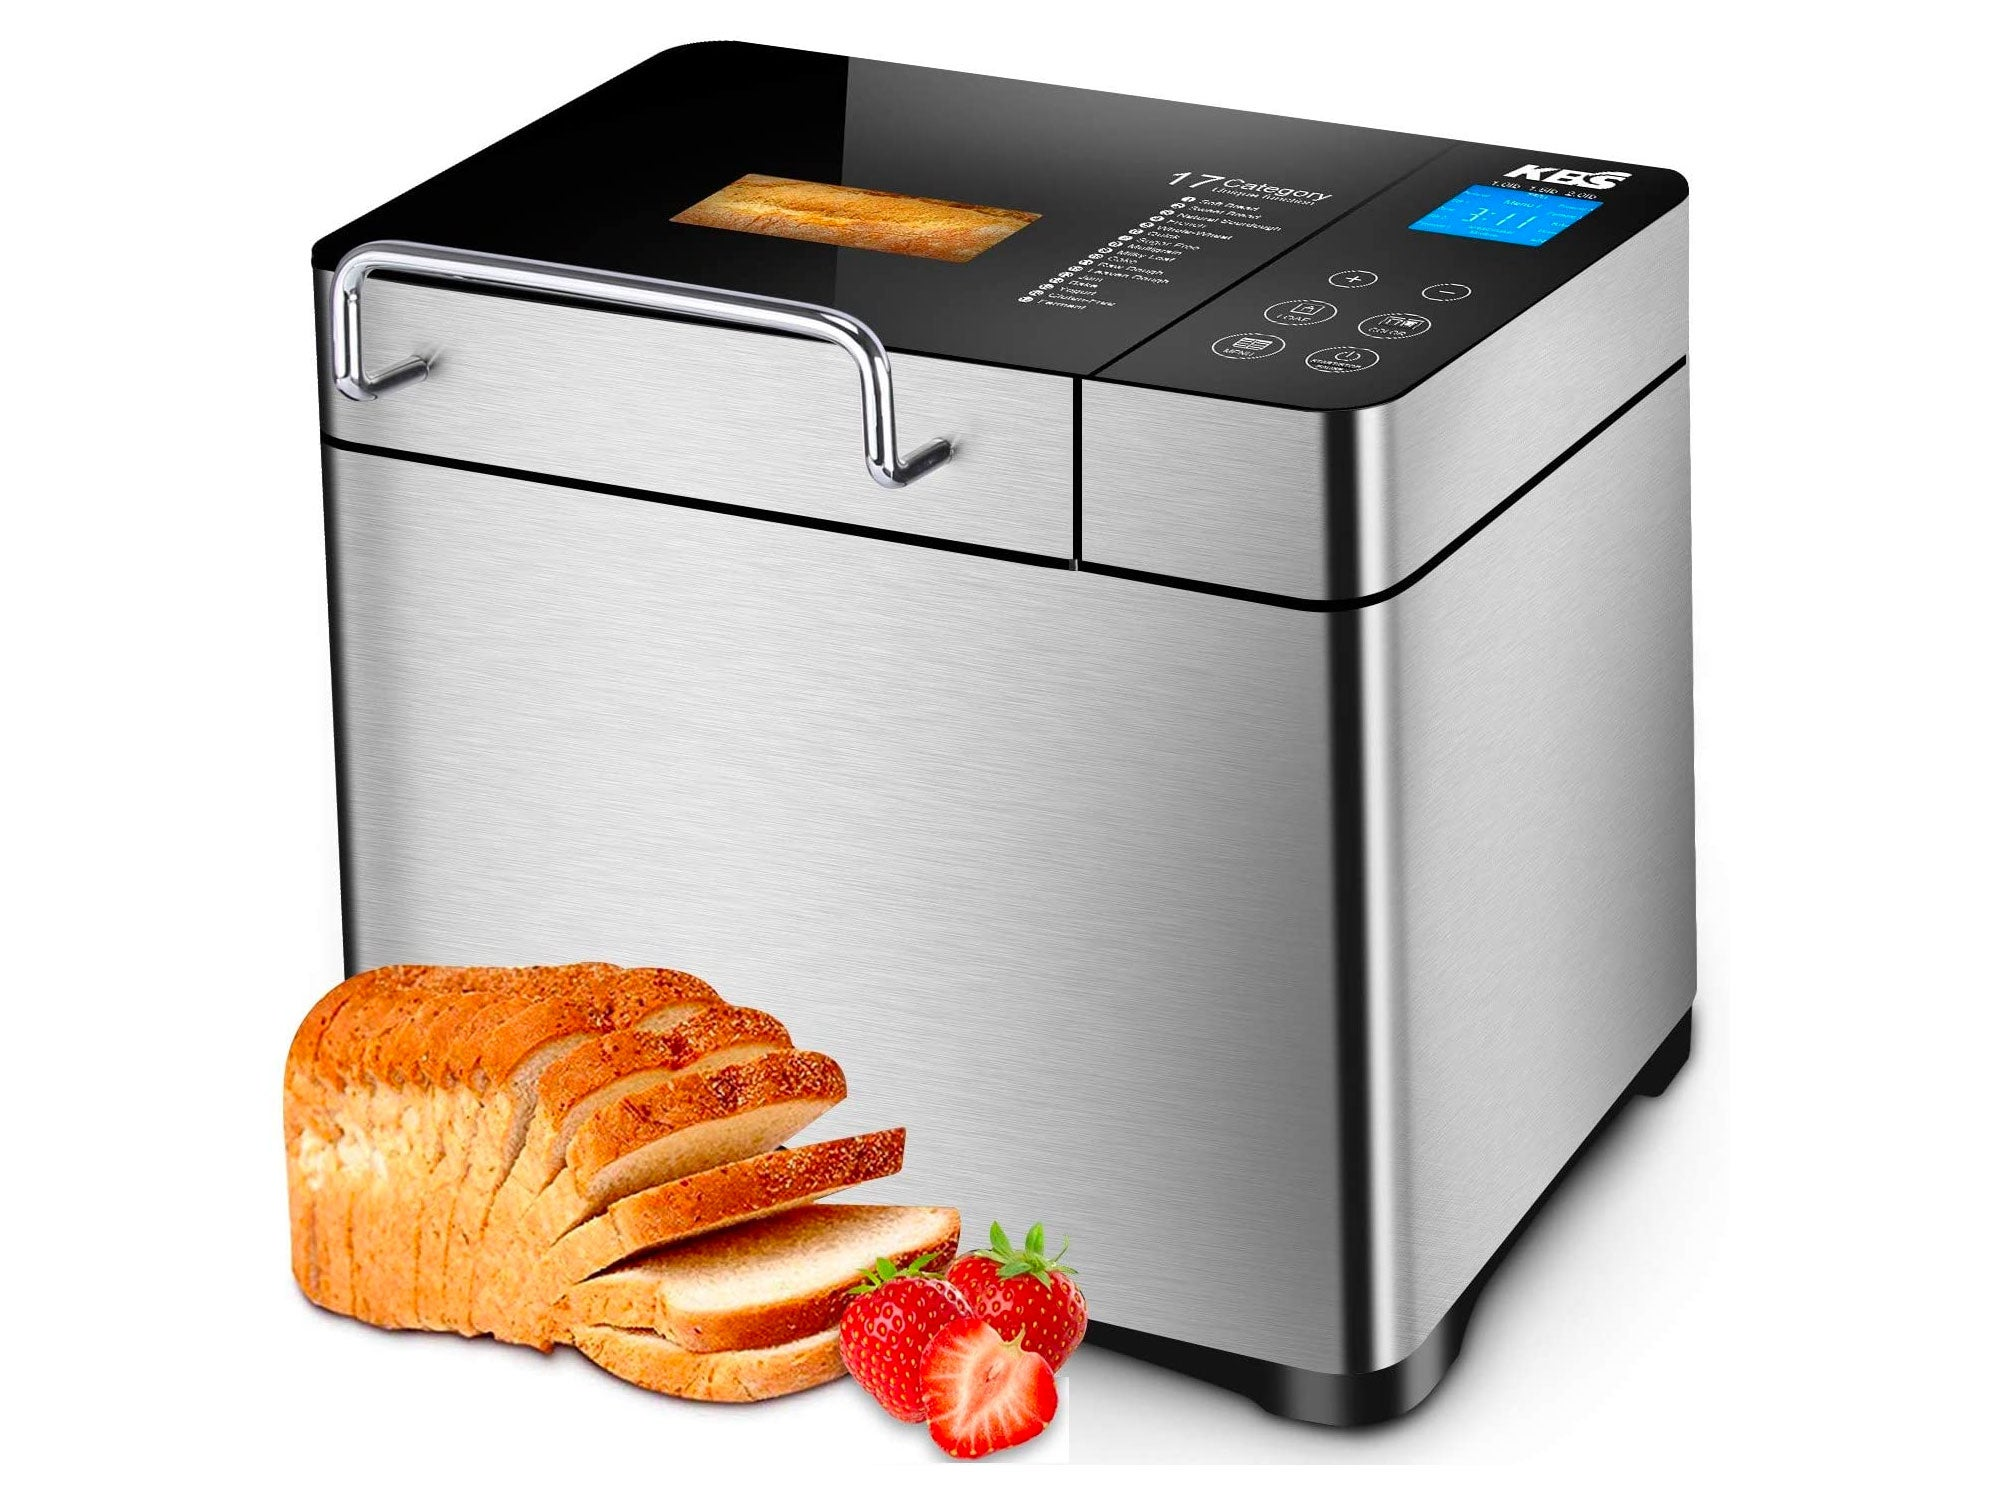 KBS Automatic Bread Machine, 2.2LB Stainless Steel Bread Maker with Fruit Nut Dispenser, Ceramic Pan, Smart Touch Button, 17 Programs, 3 Loaf Sizes, 3 Crust...